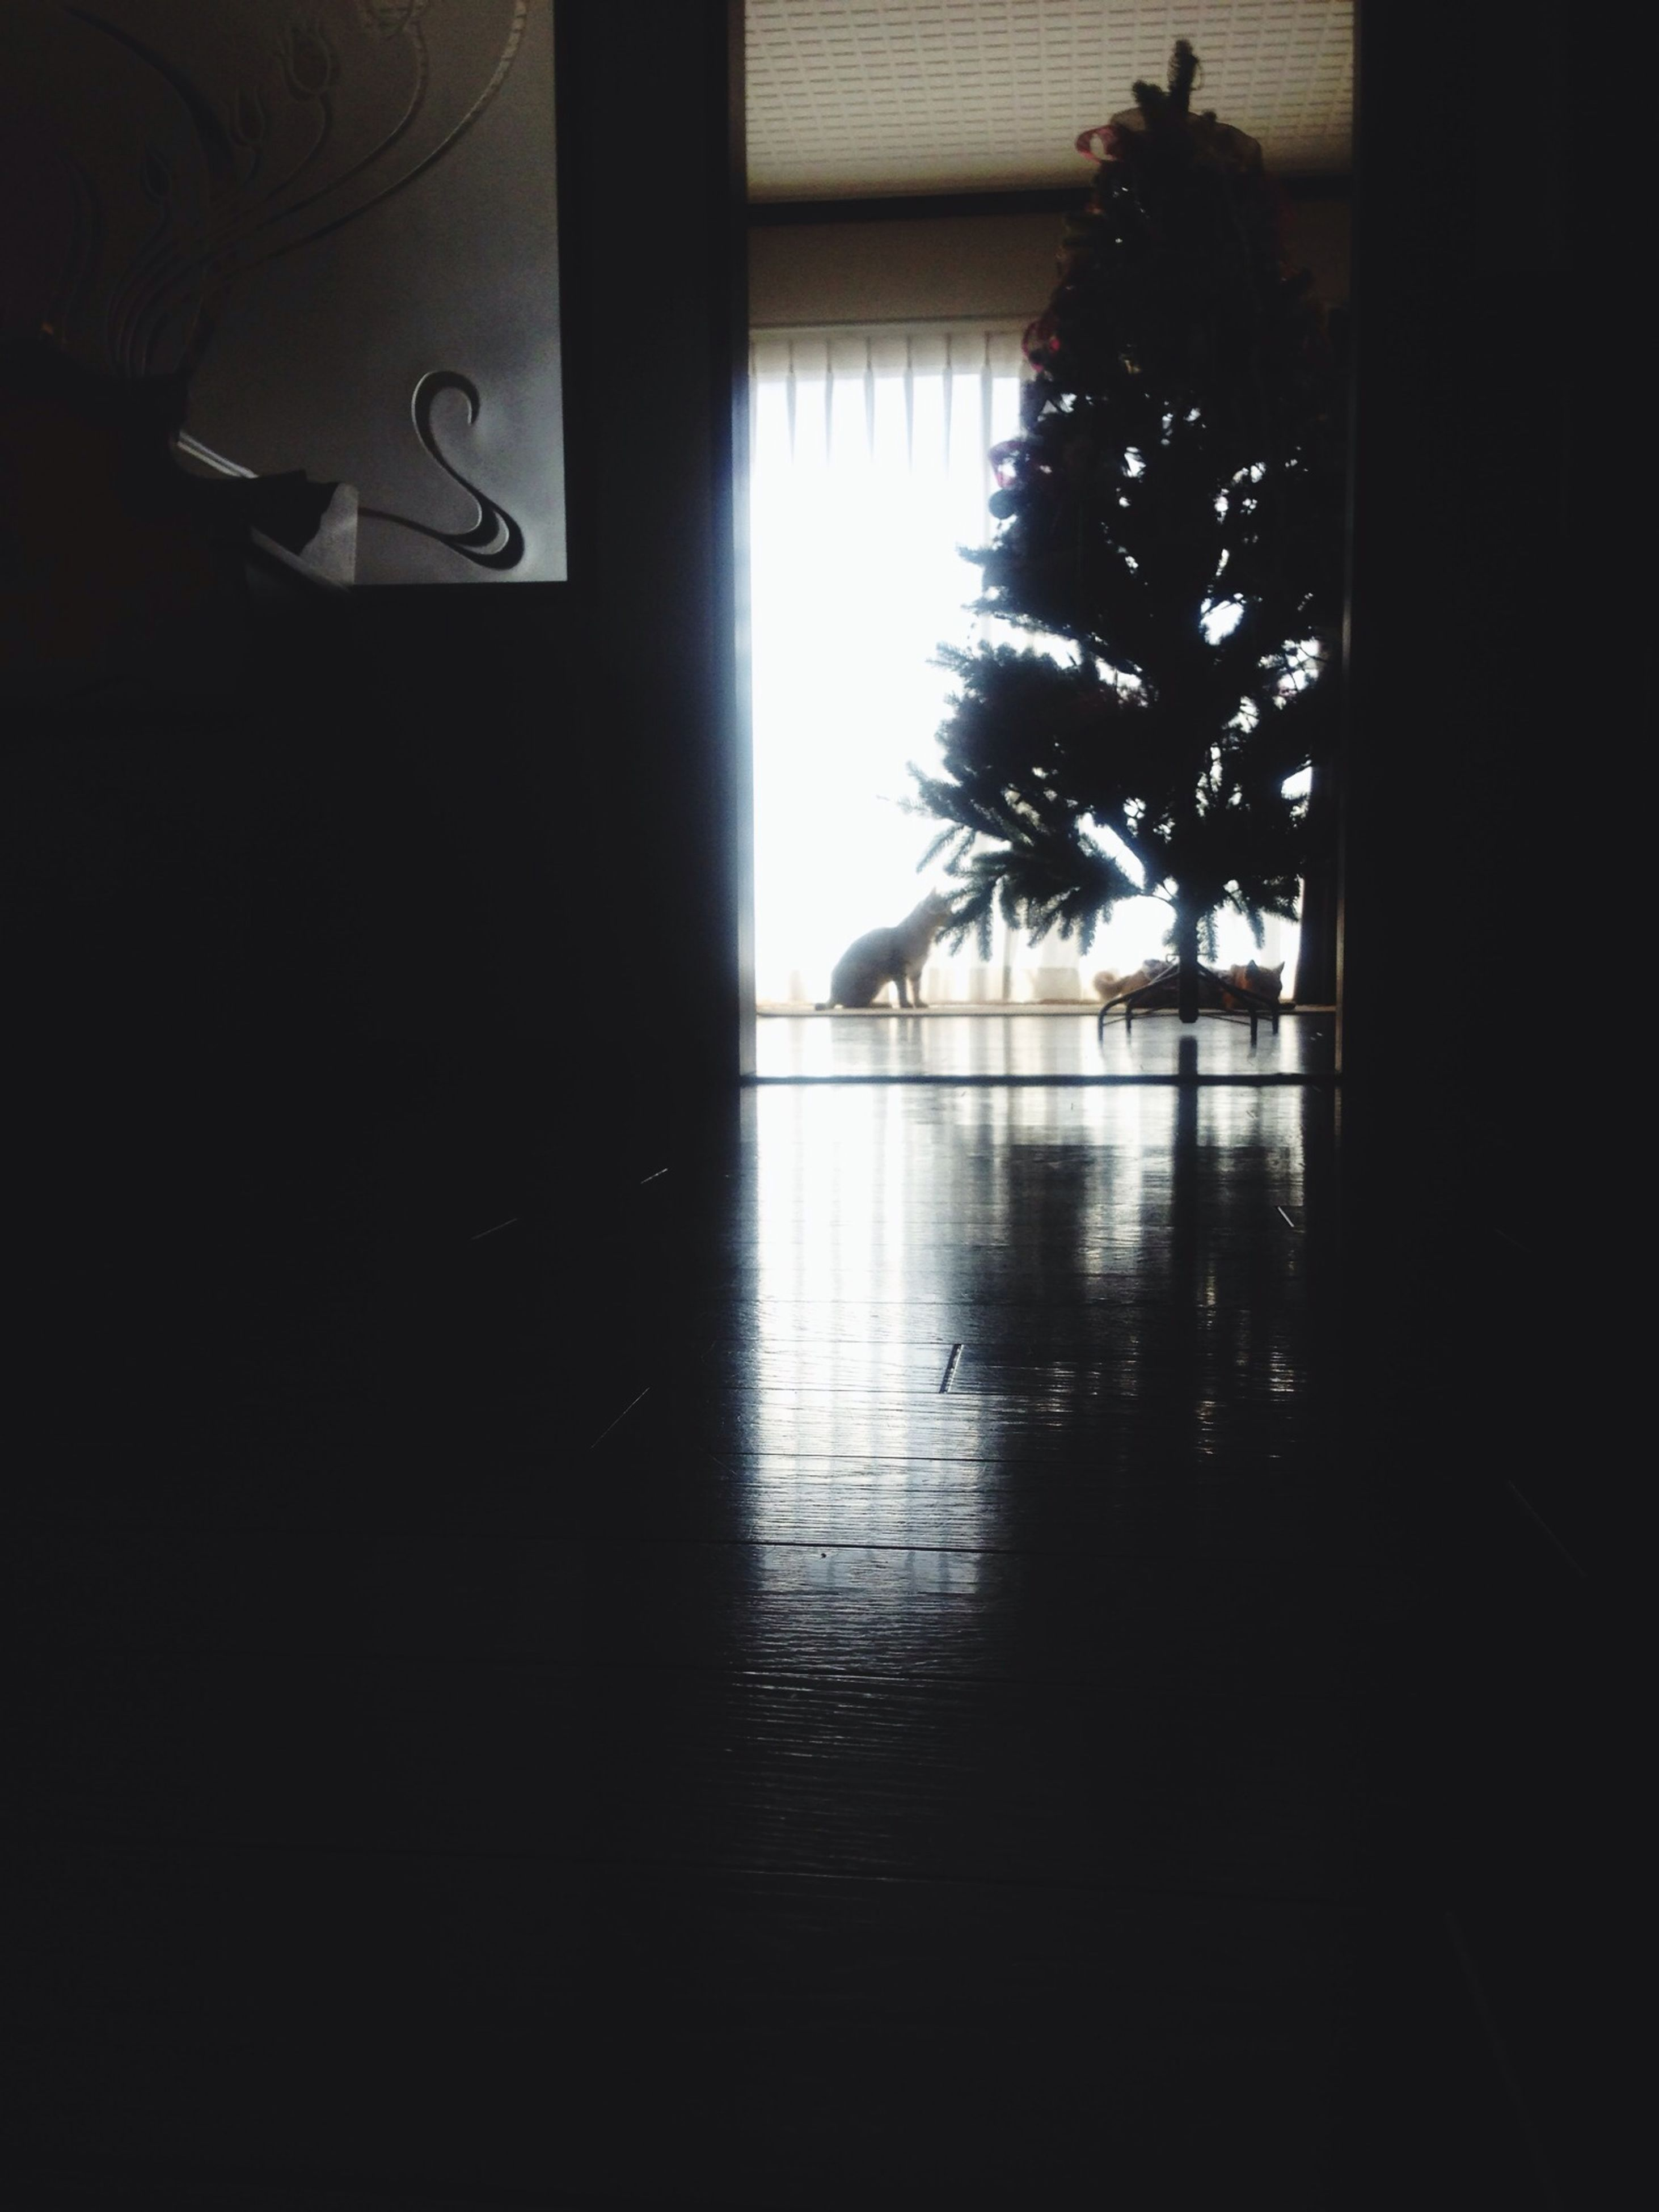 indoors, window, silhouette, tree, glass - material, built structure, transparent, sunlight, architecture, dark, reflection, shadow, home interior, day, no people, looking through window, water, empty, absence, house